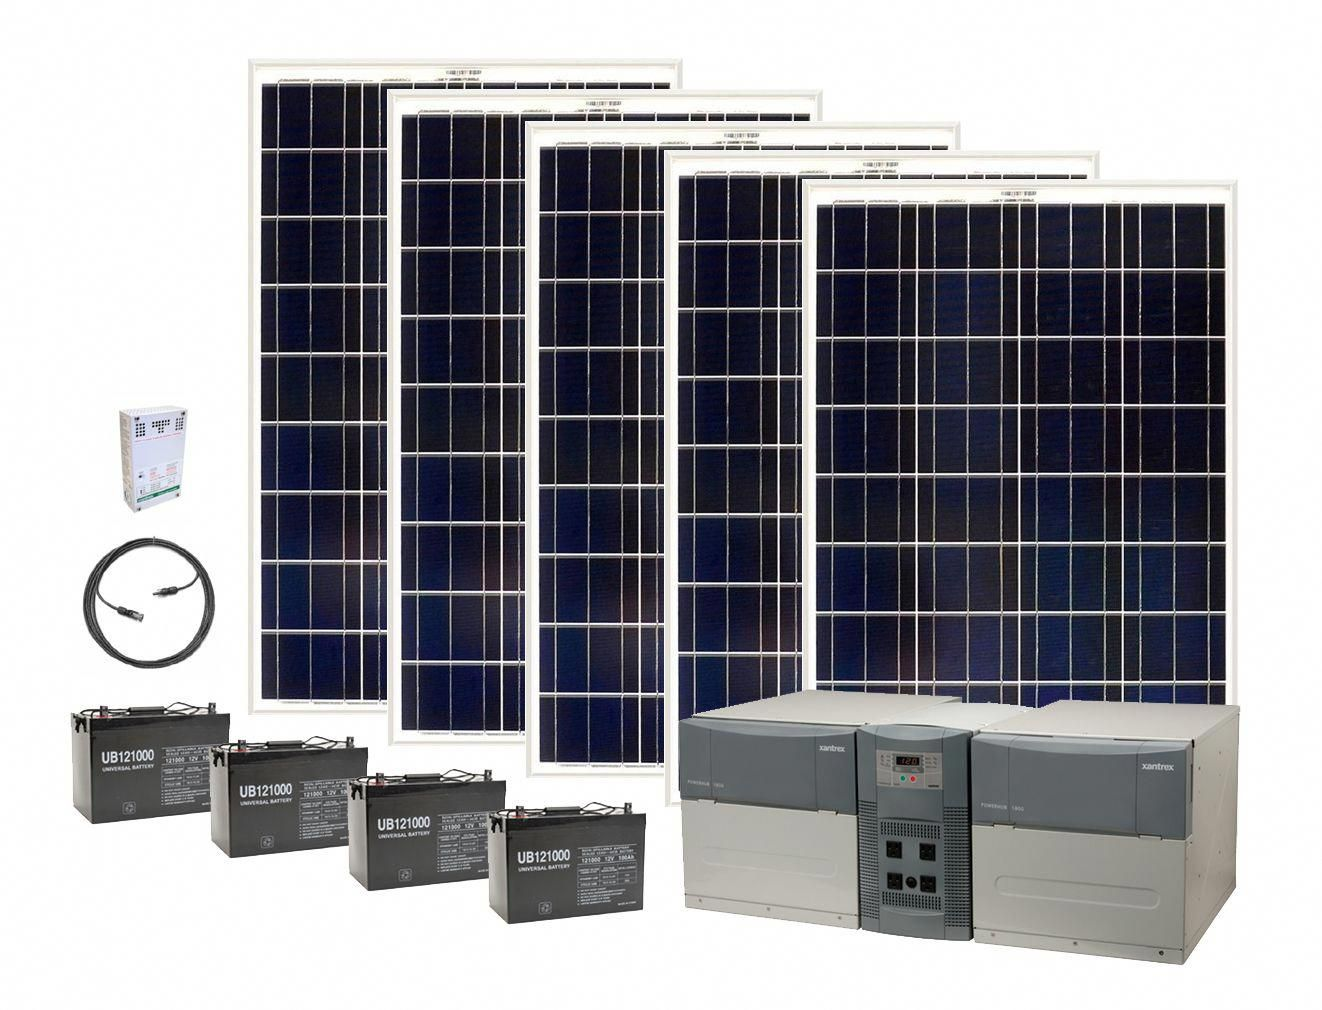 120 Volt Solar Power Generator Kits Earthtech Products Solargenerator Solar Power House Solar Panels Solar Heating